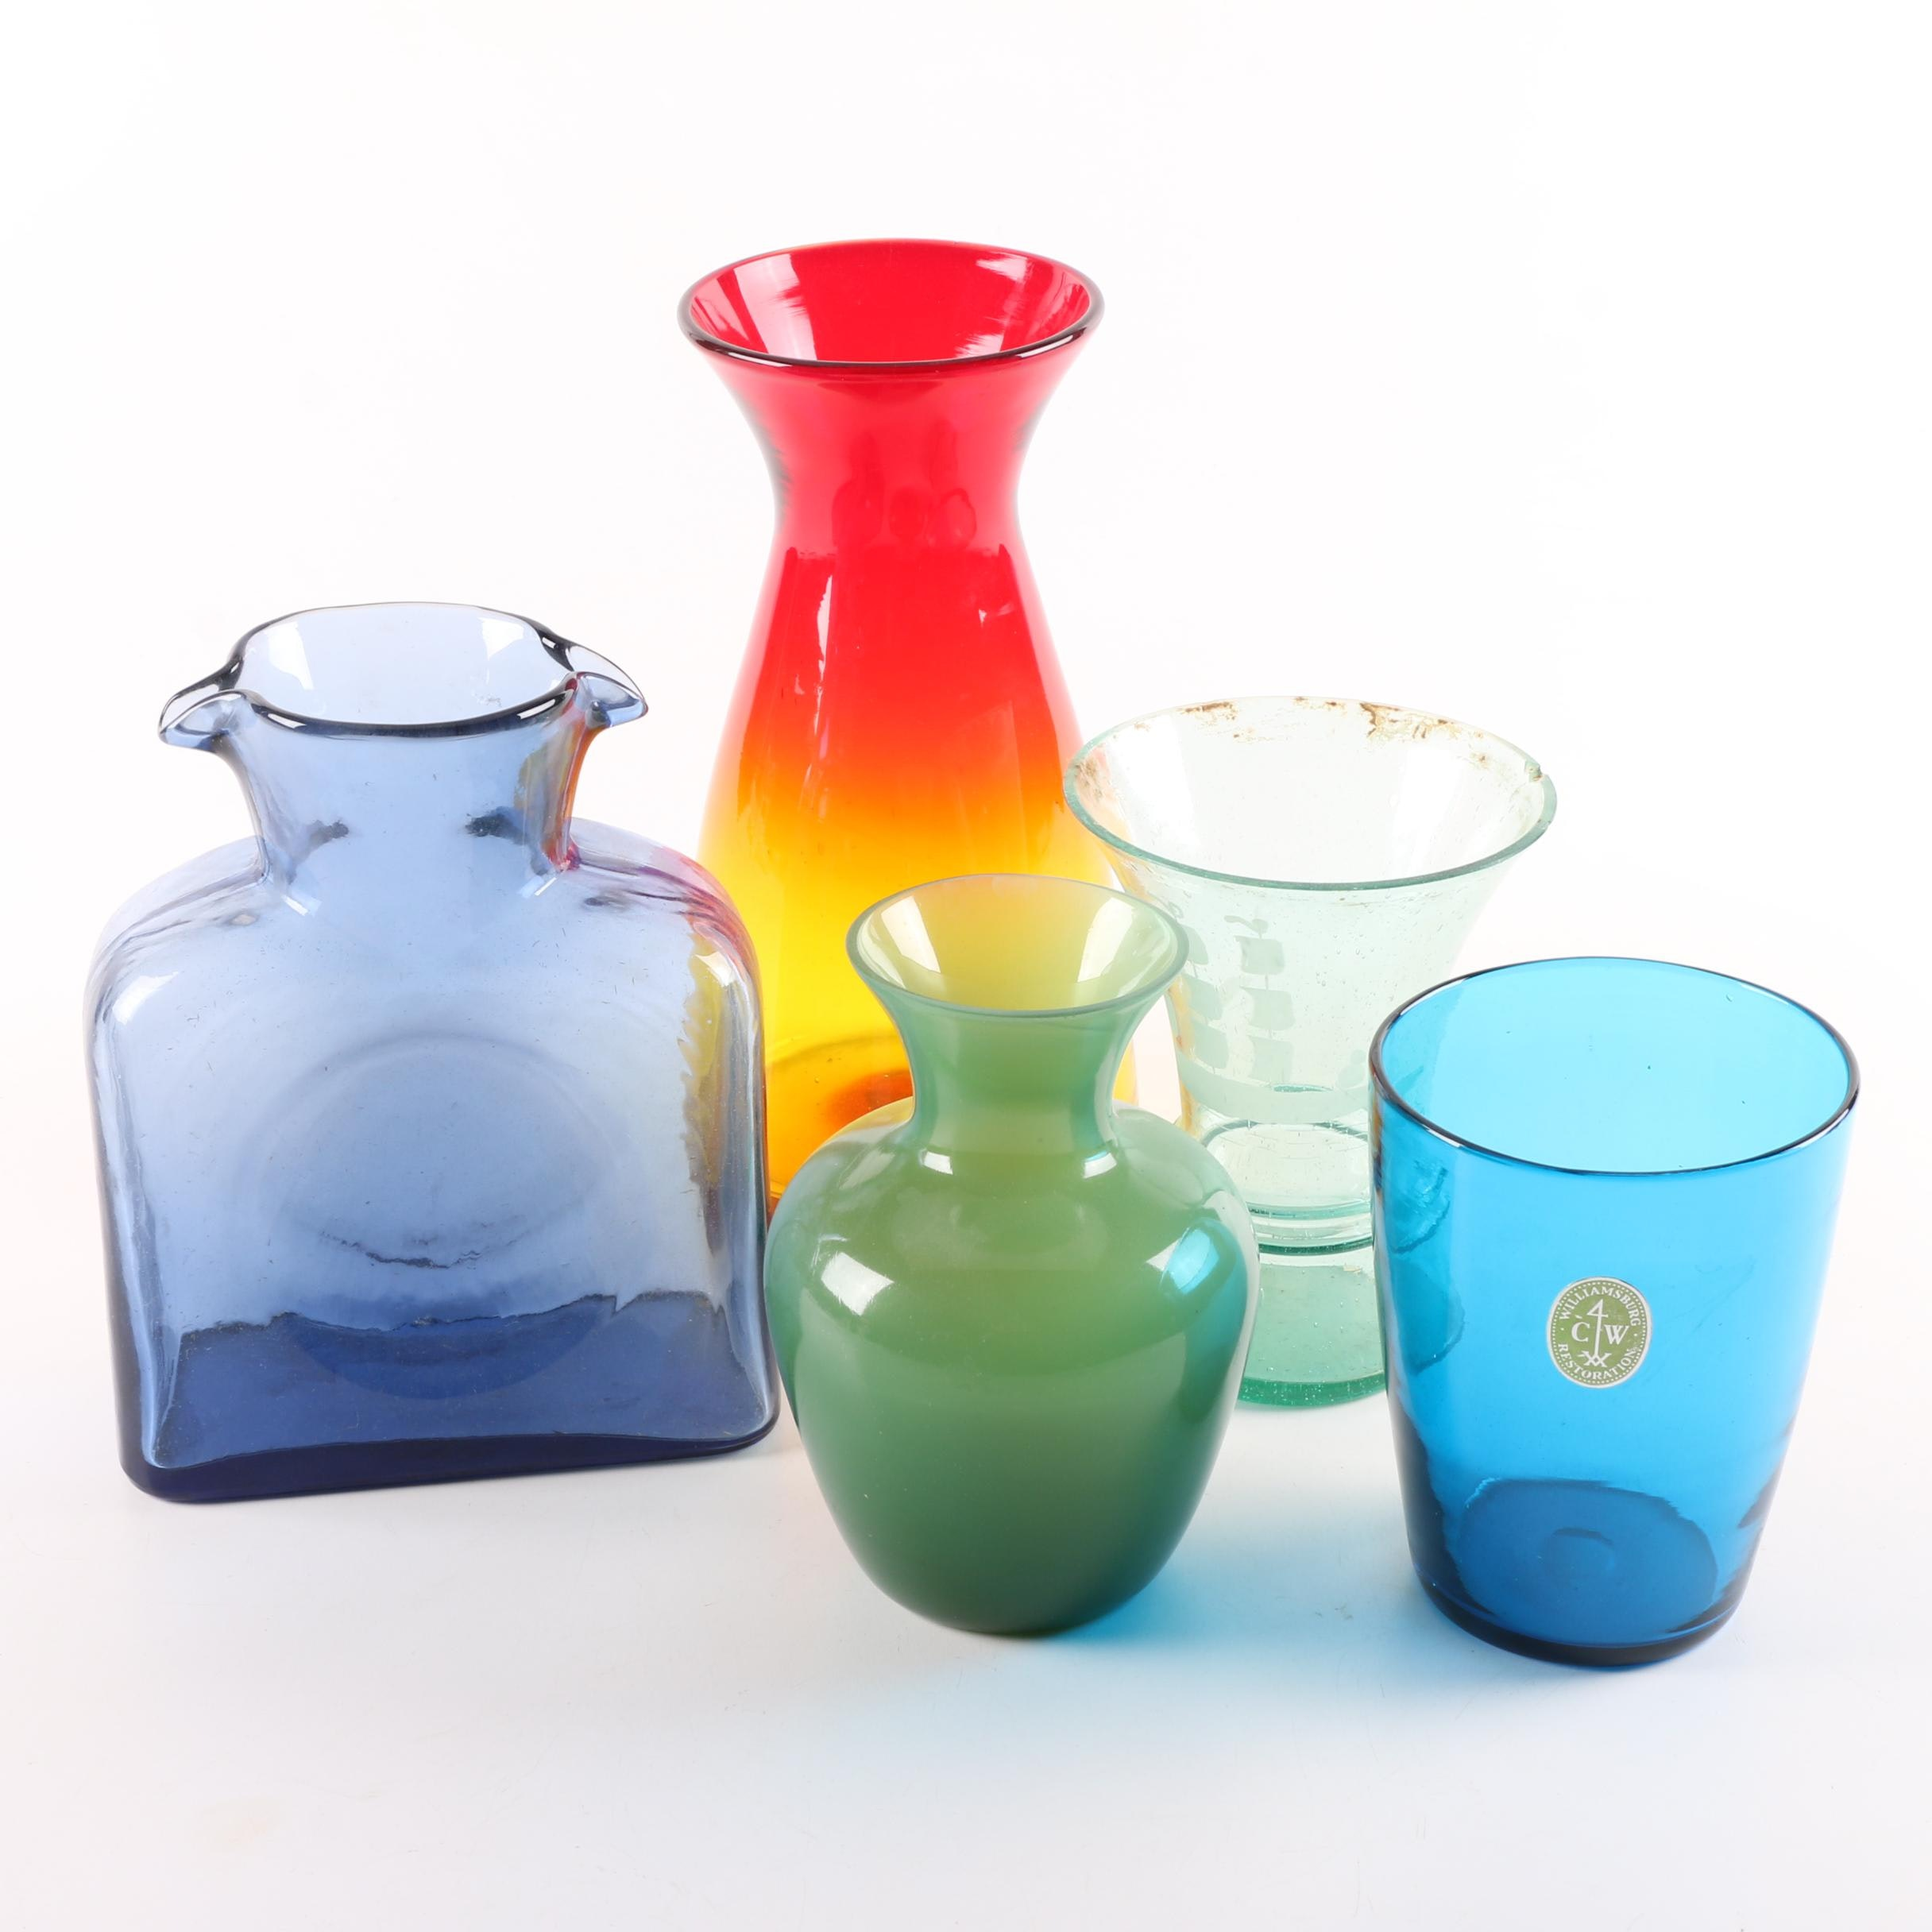 Glassware Including Blenko Double Spout Pitcher and Hand Blown Amberina Vase